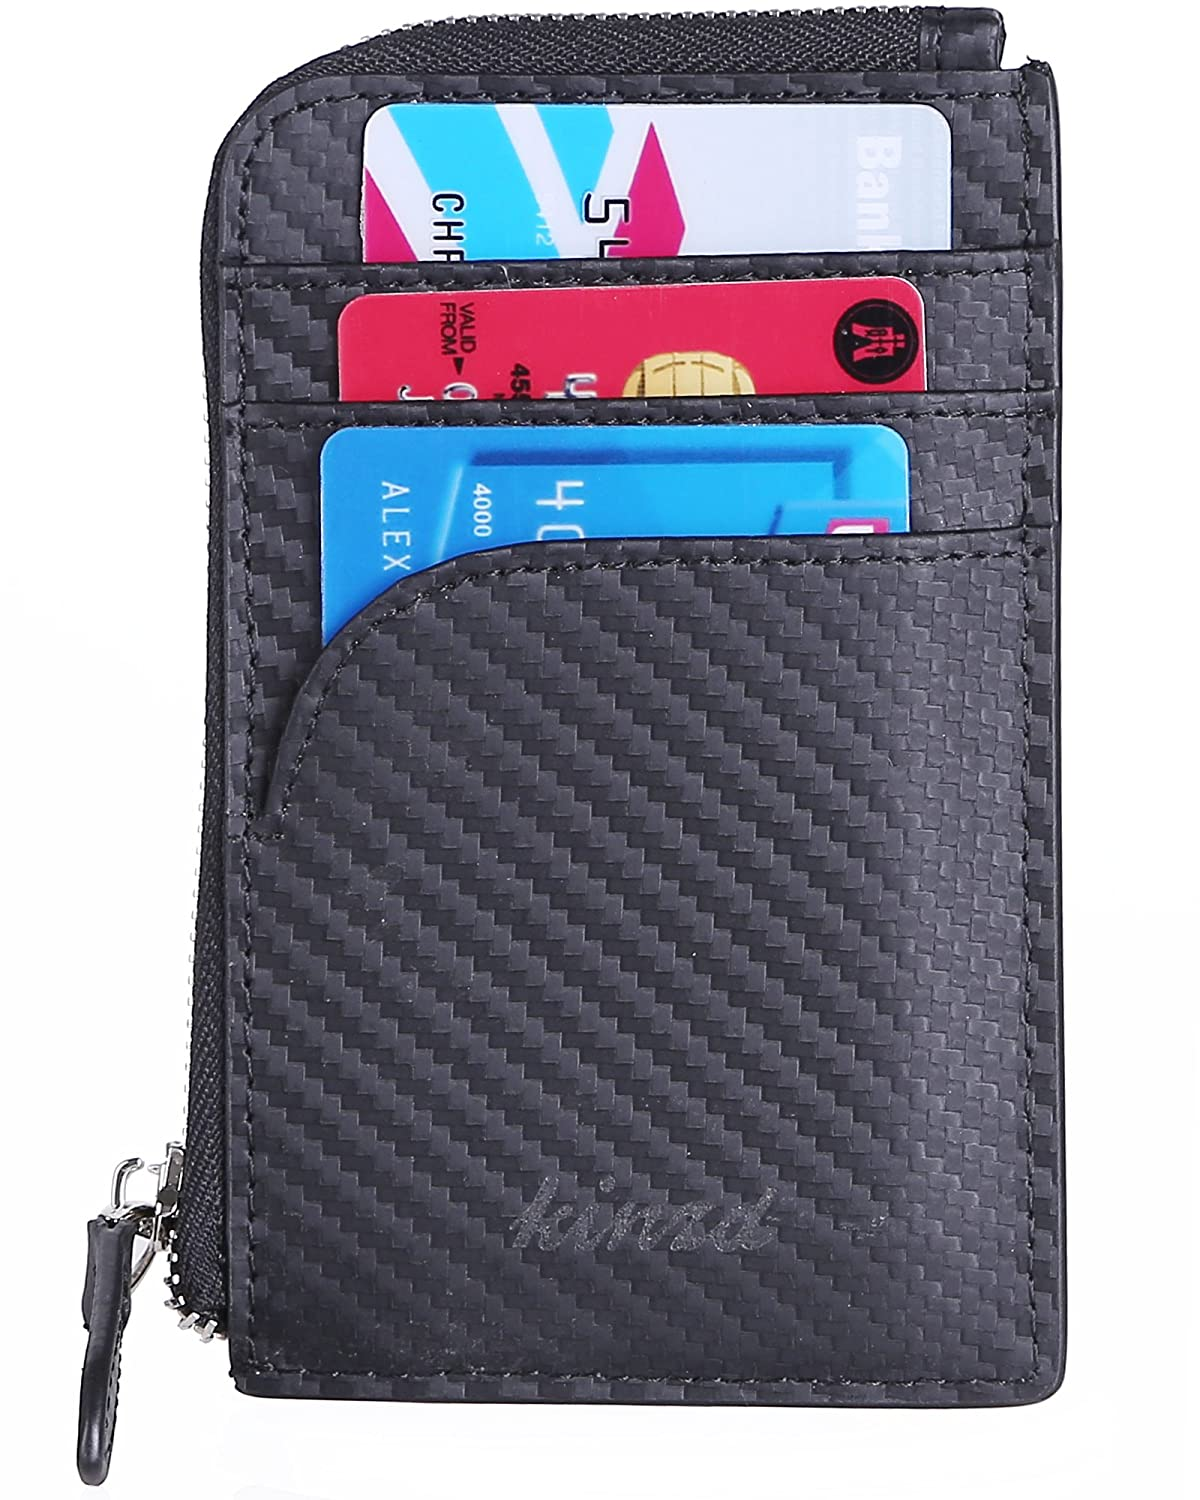 Kinzd Front Pocket Wallet RFID Minimalist Coin Wallet Credit Card Holder (Black)